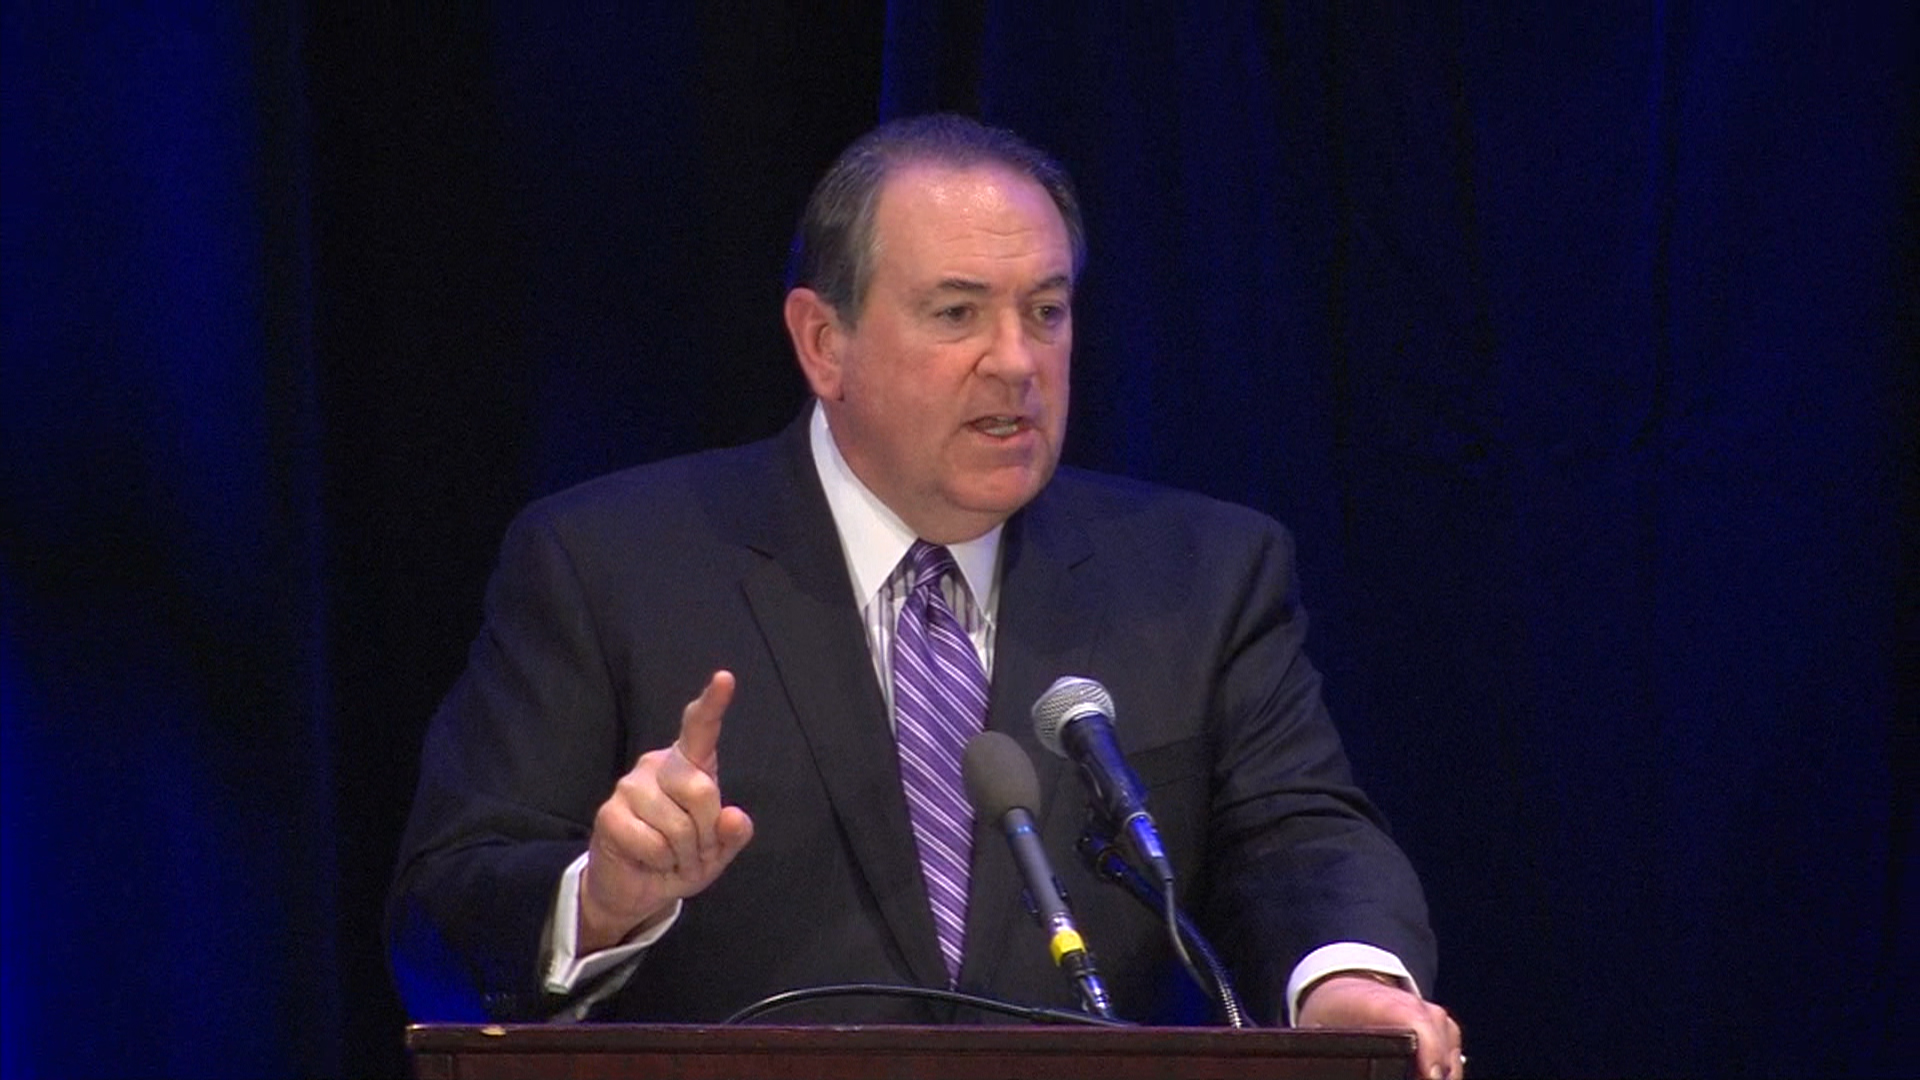 Huckabee causes stir with 'libido' comment